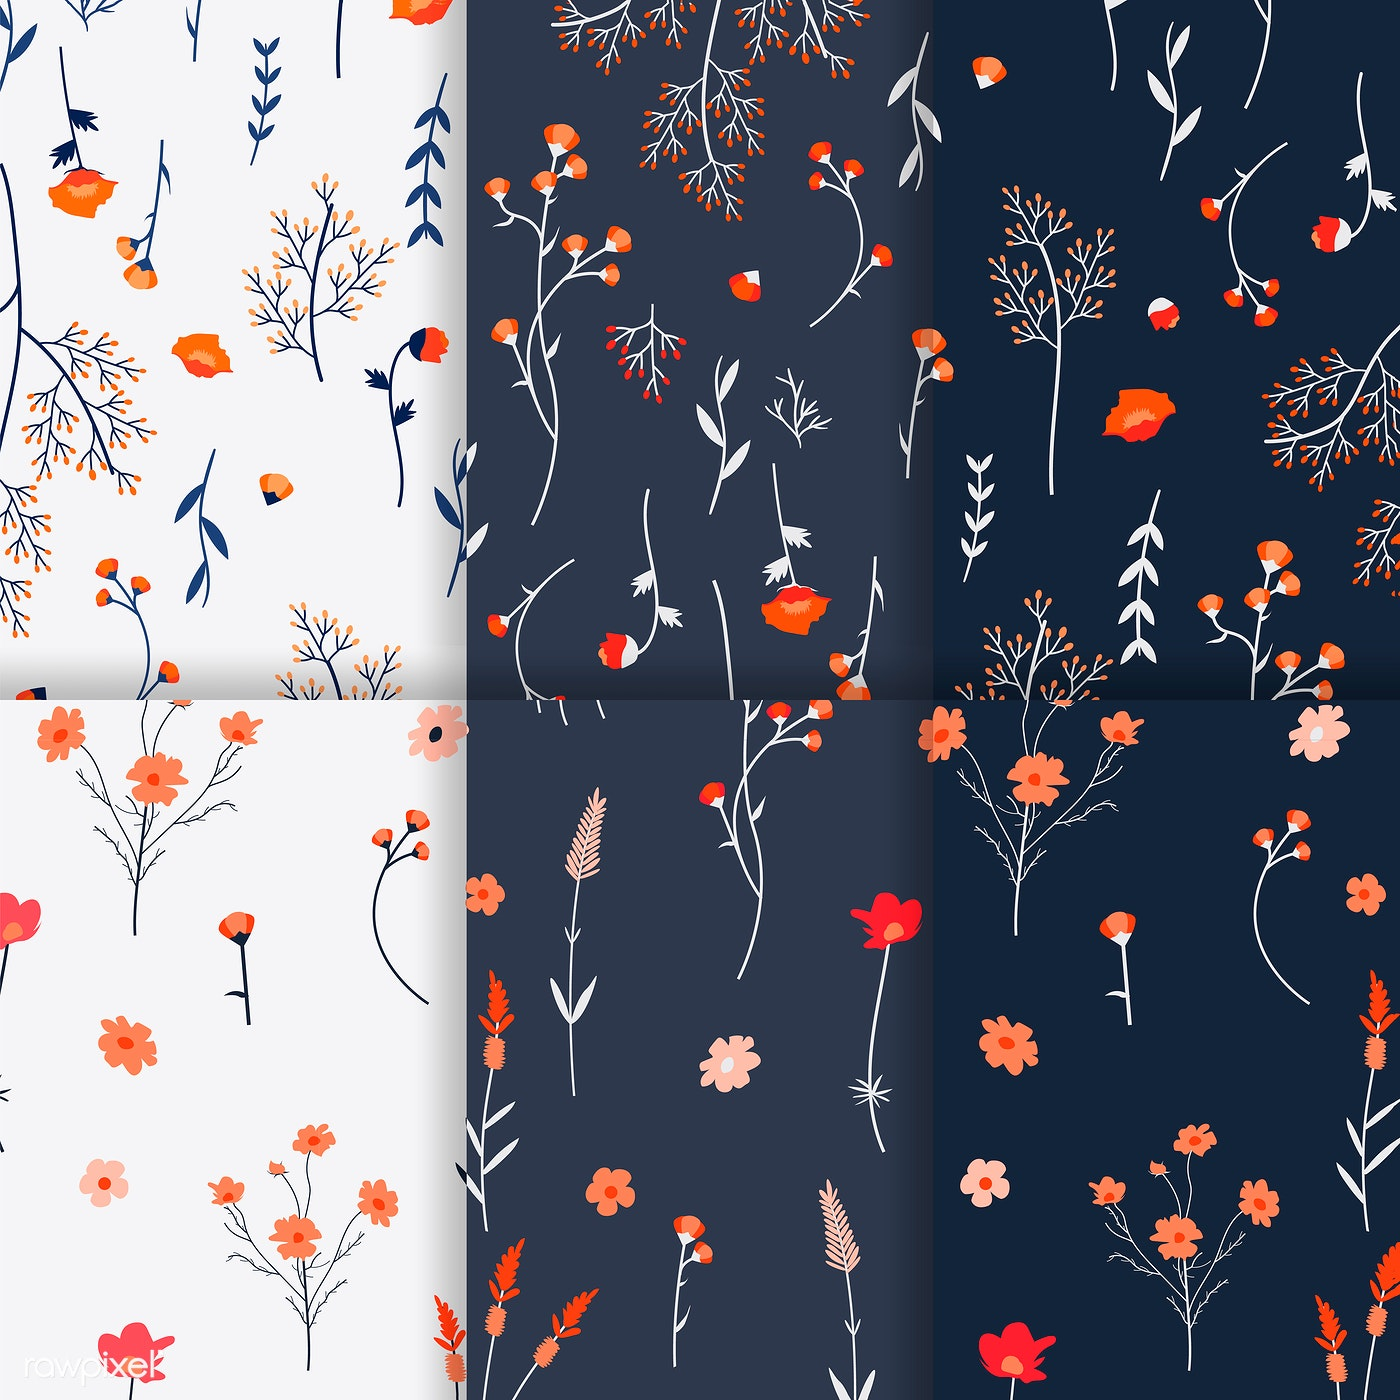 Floral Patterned Background Free Stock Vector 544810